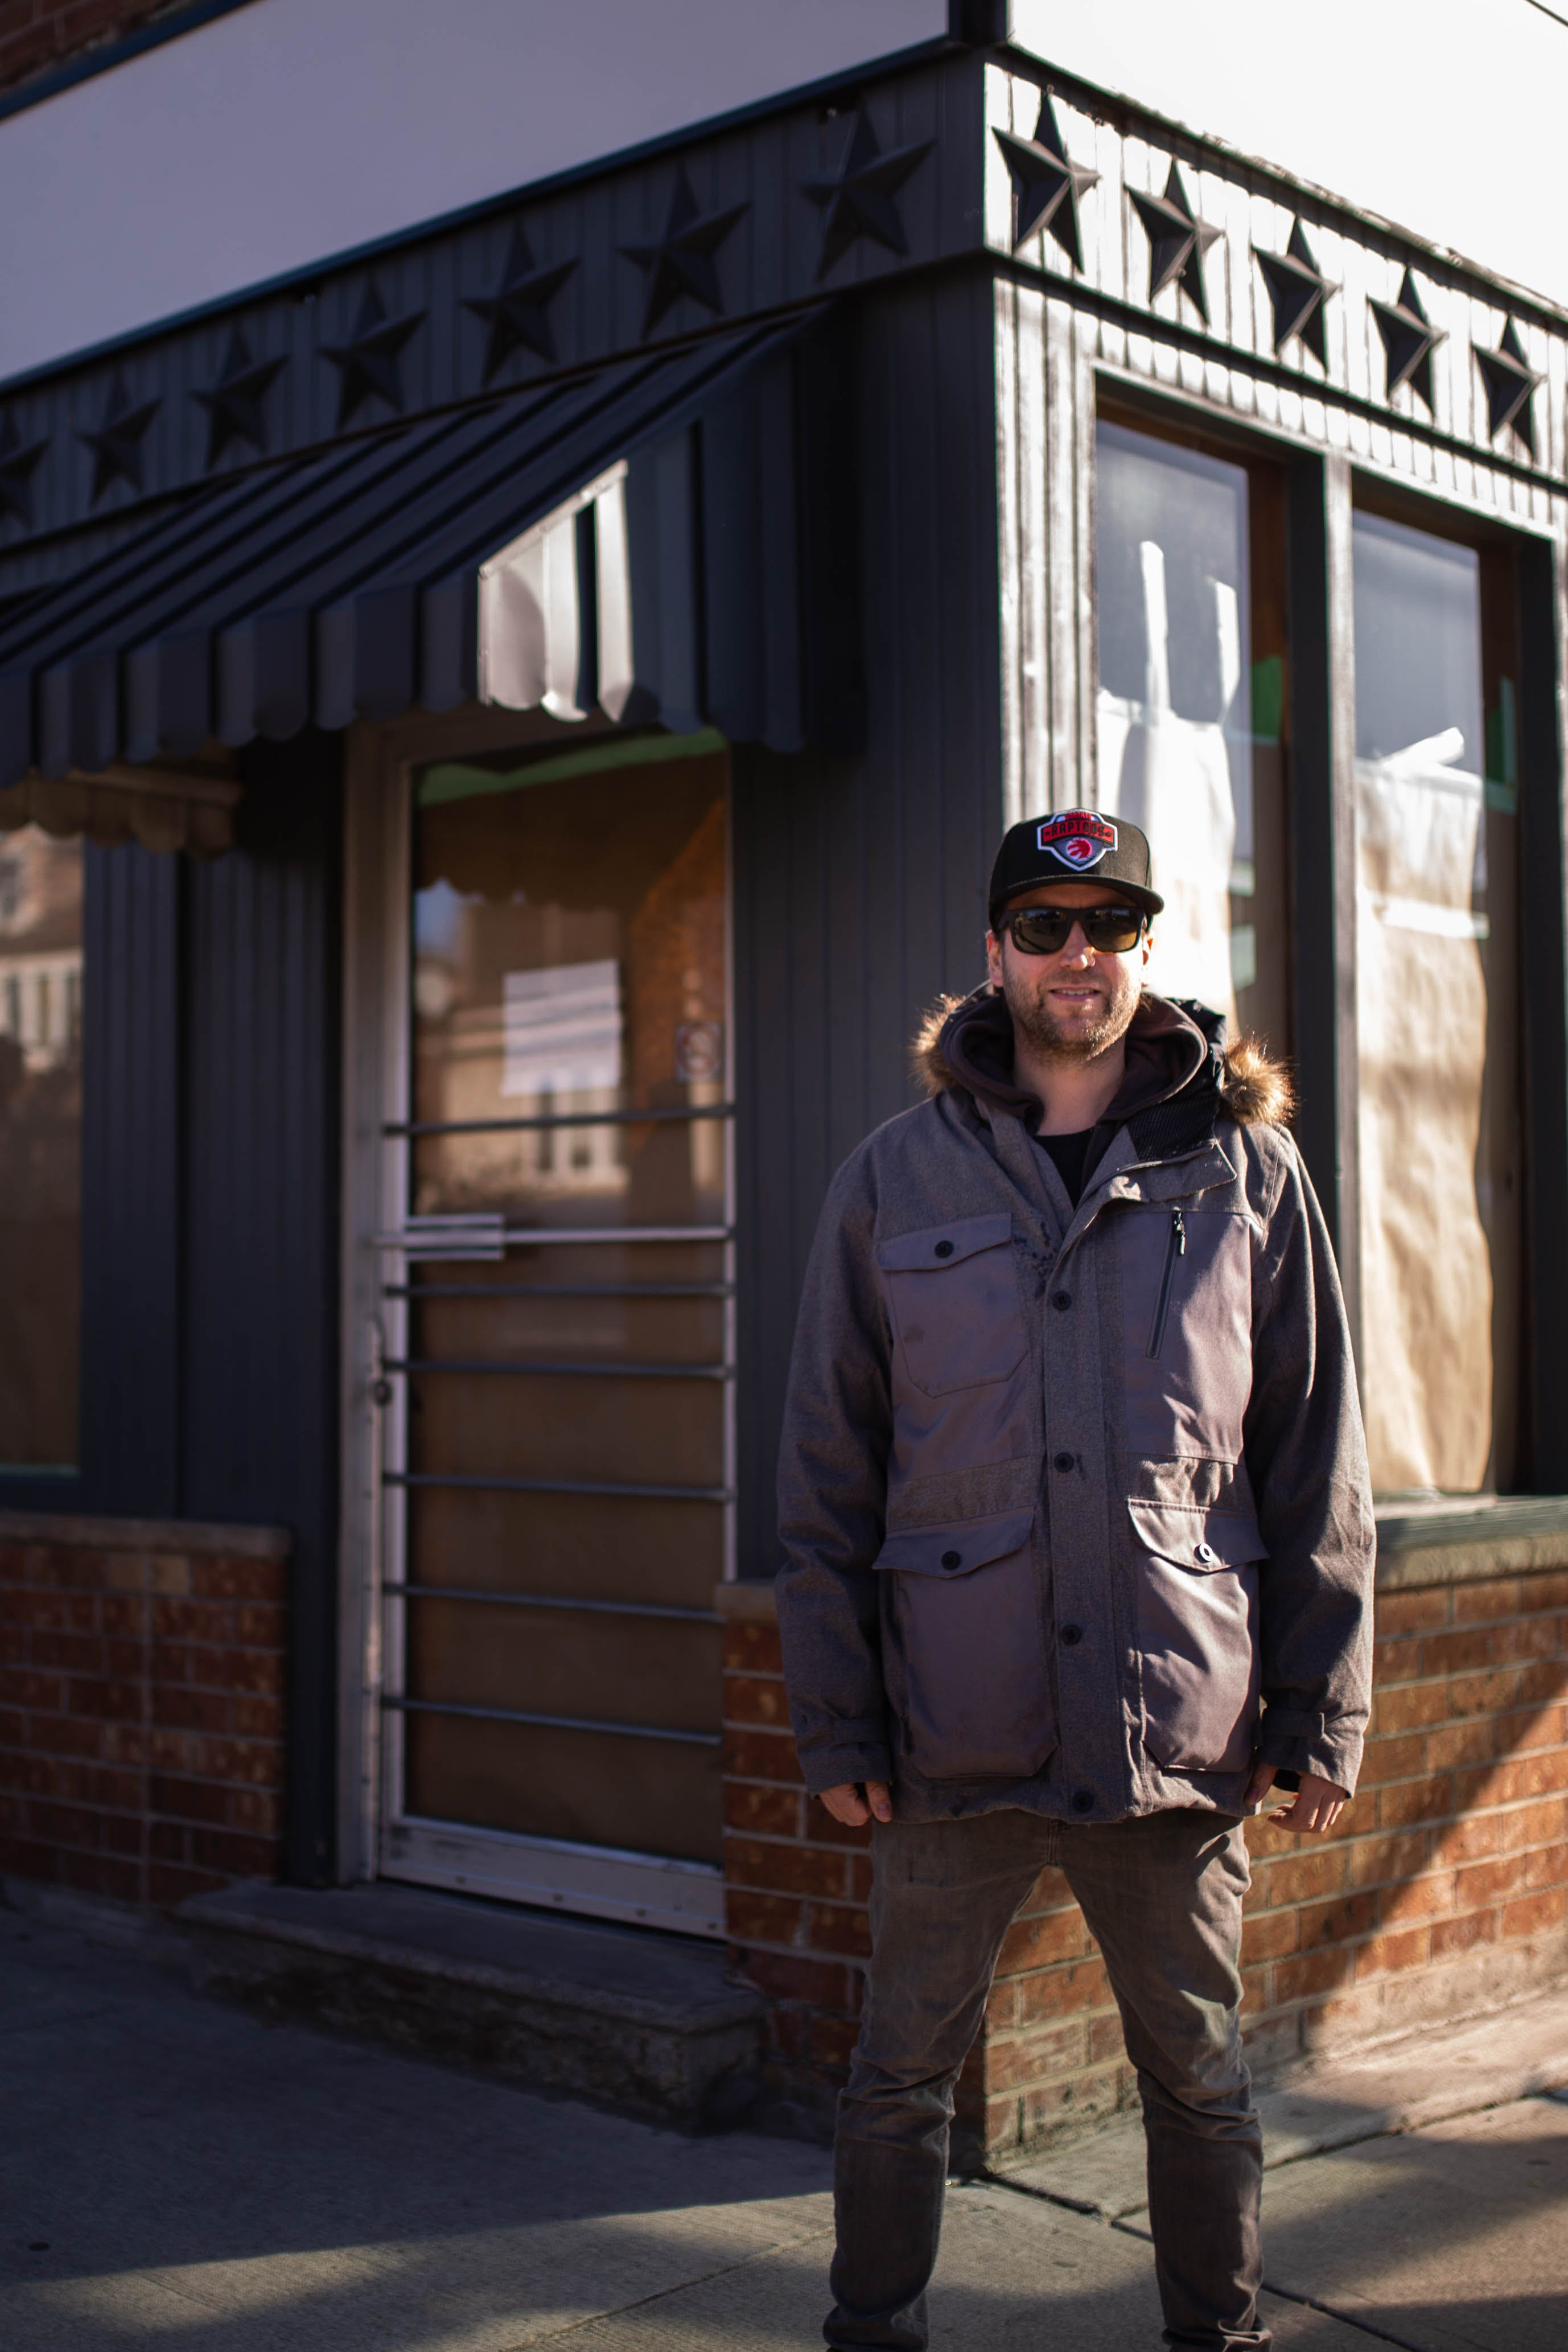 Luke Pollard, owner of One Night Only Pizza Toronto, stands out front of his new storefront in Riverdale.